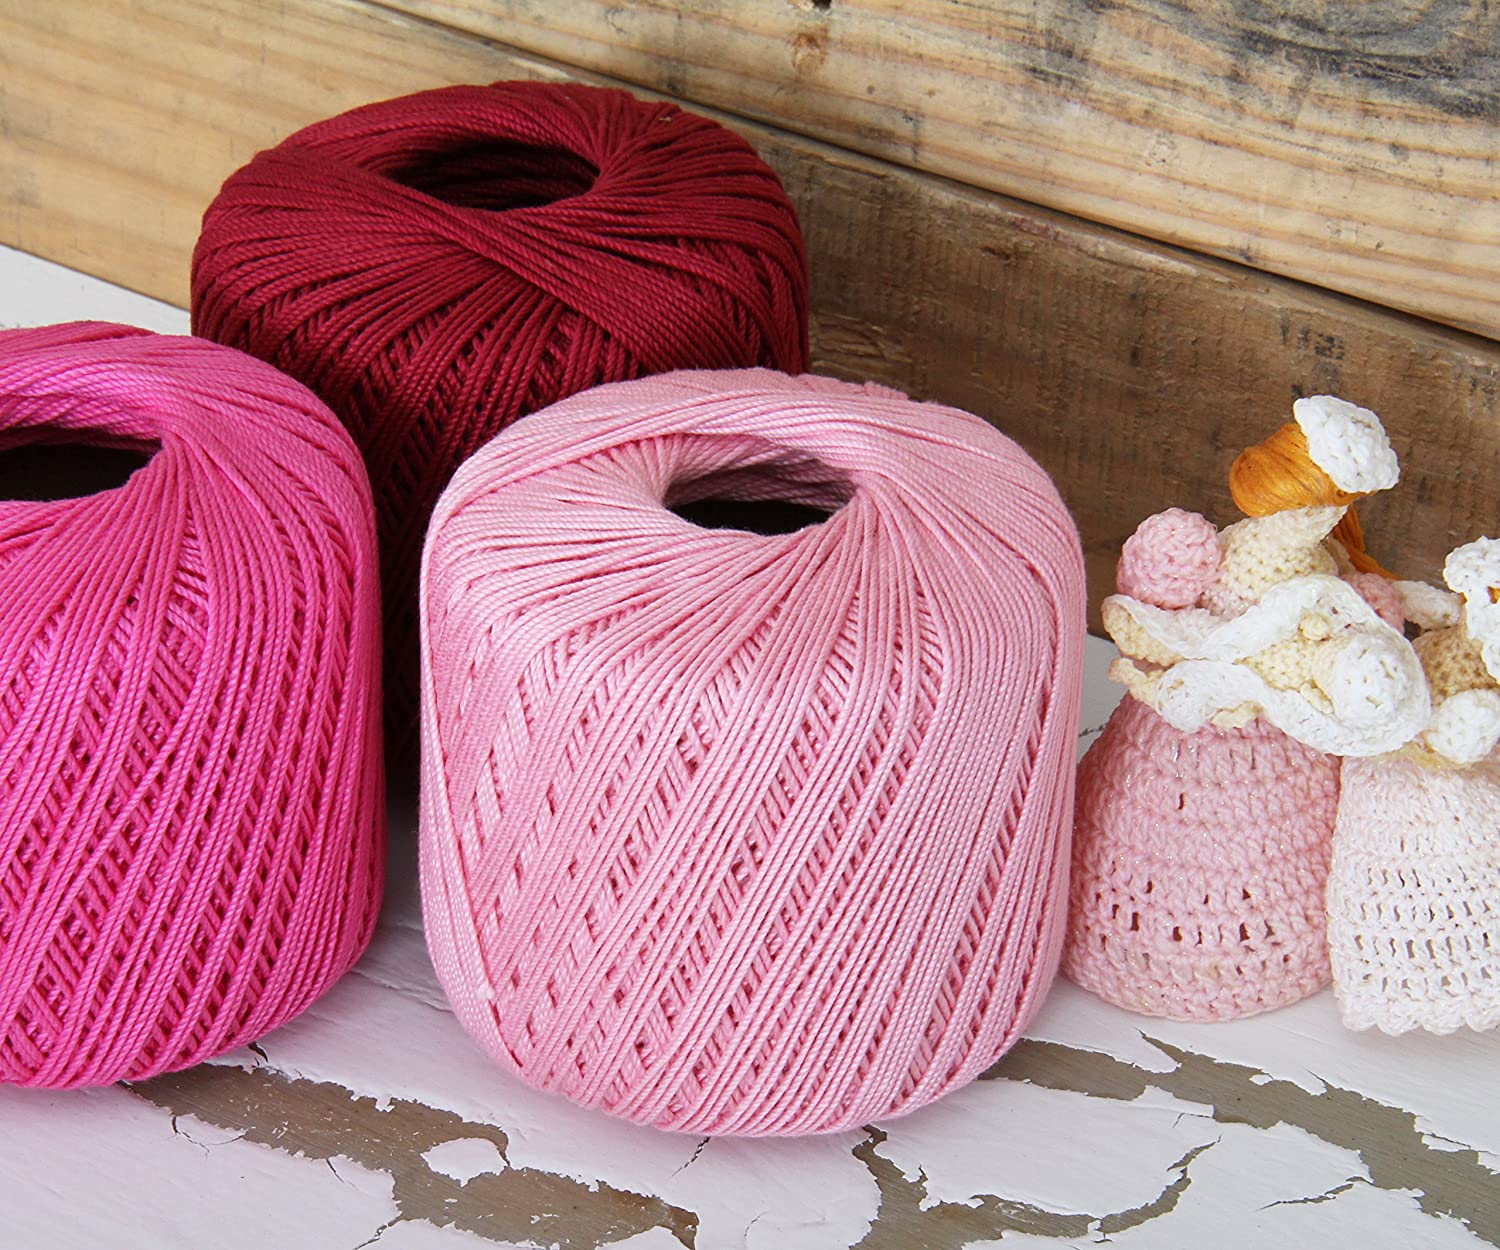 Crochet Thread - SIZE 3 - Color 12 - RED - 2 Sizes - 27 Colors Available Threadart